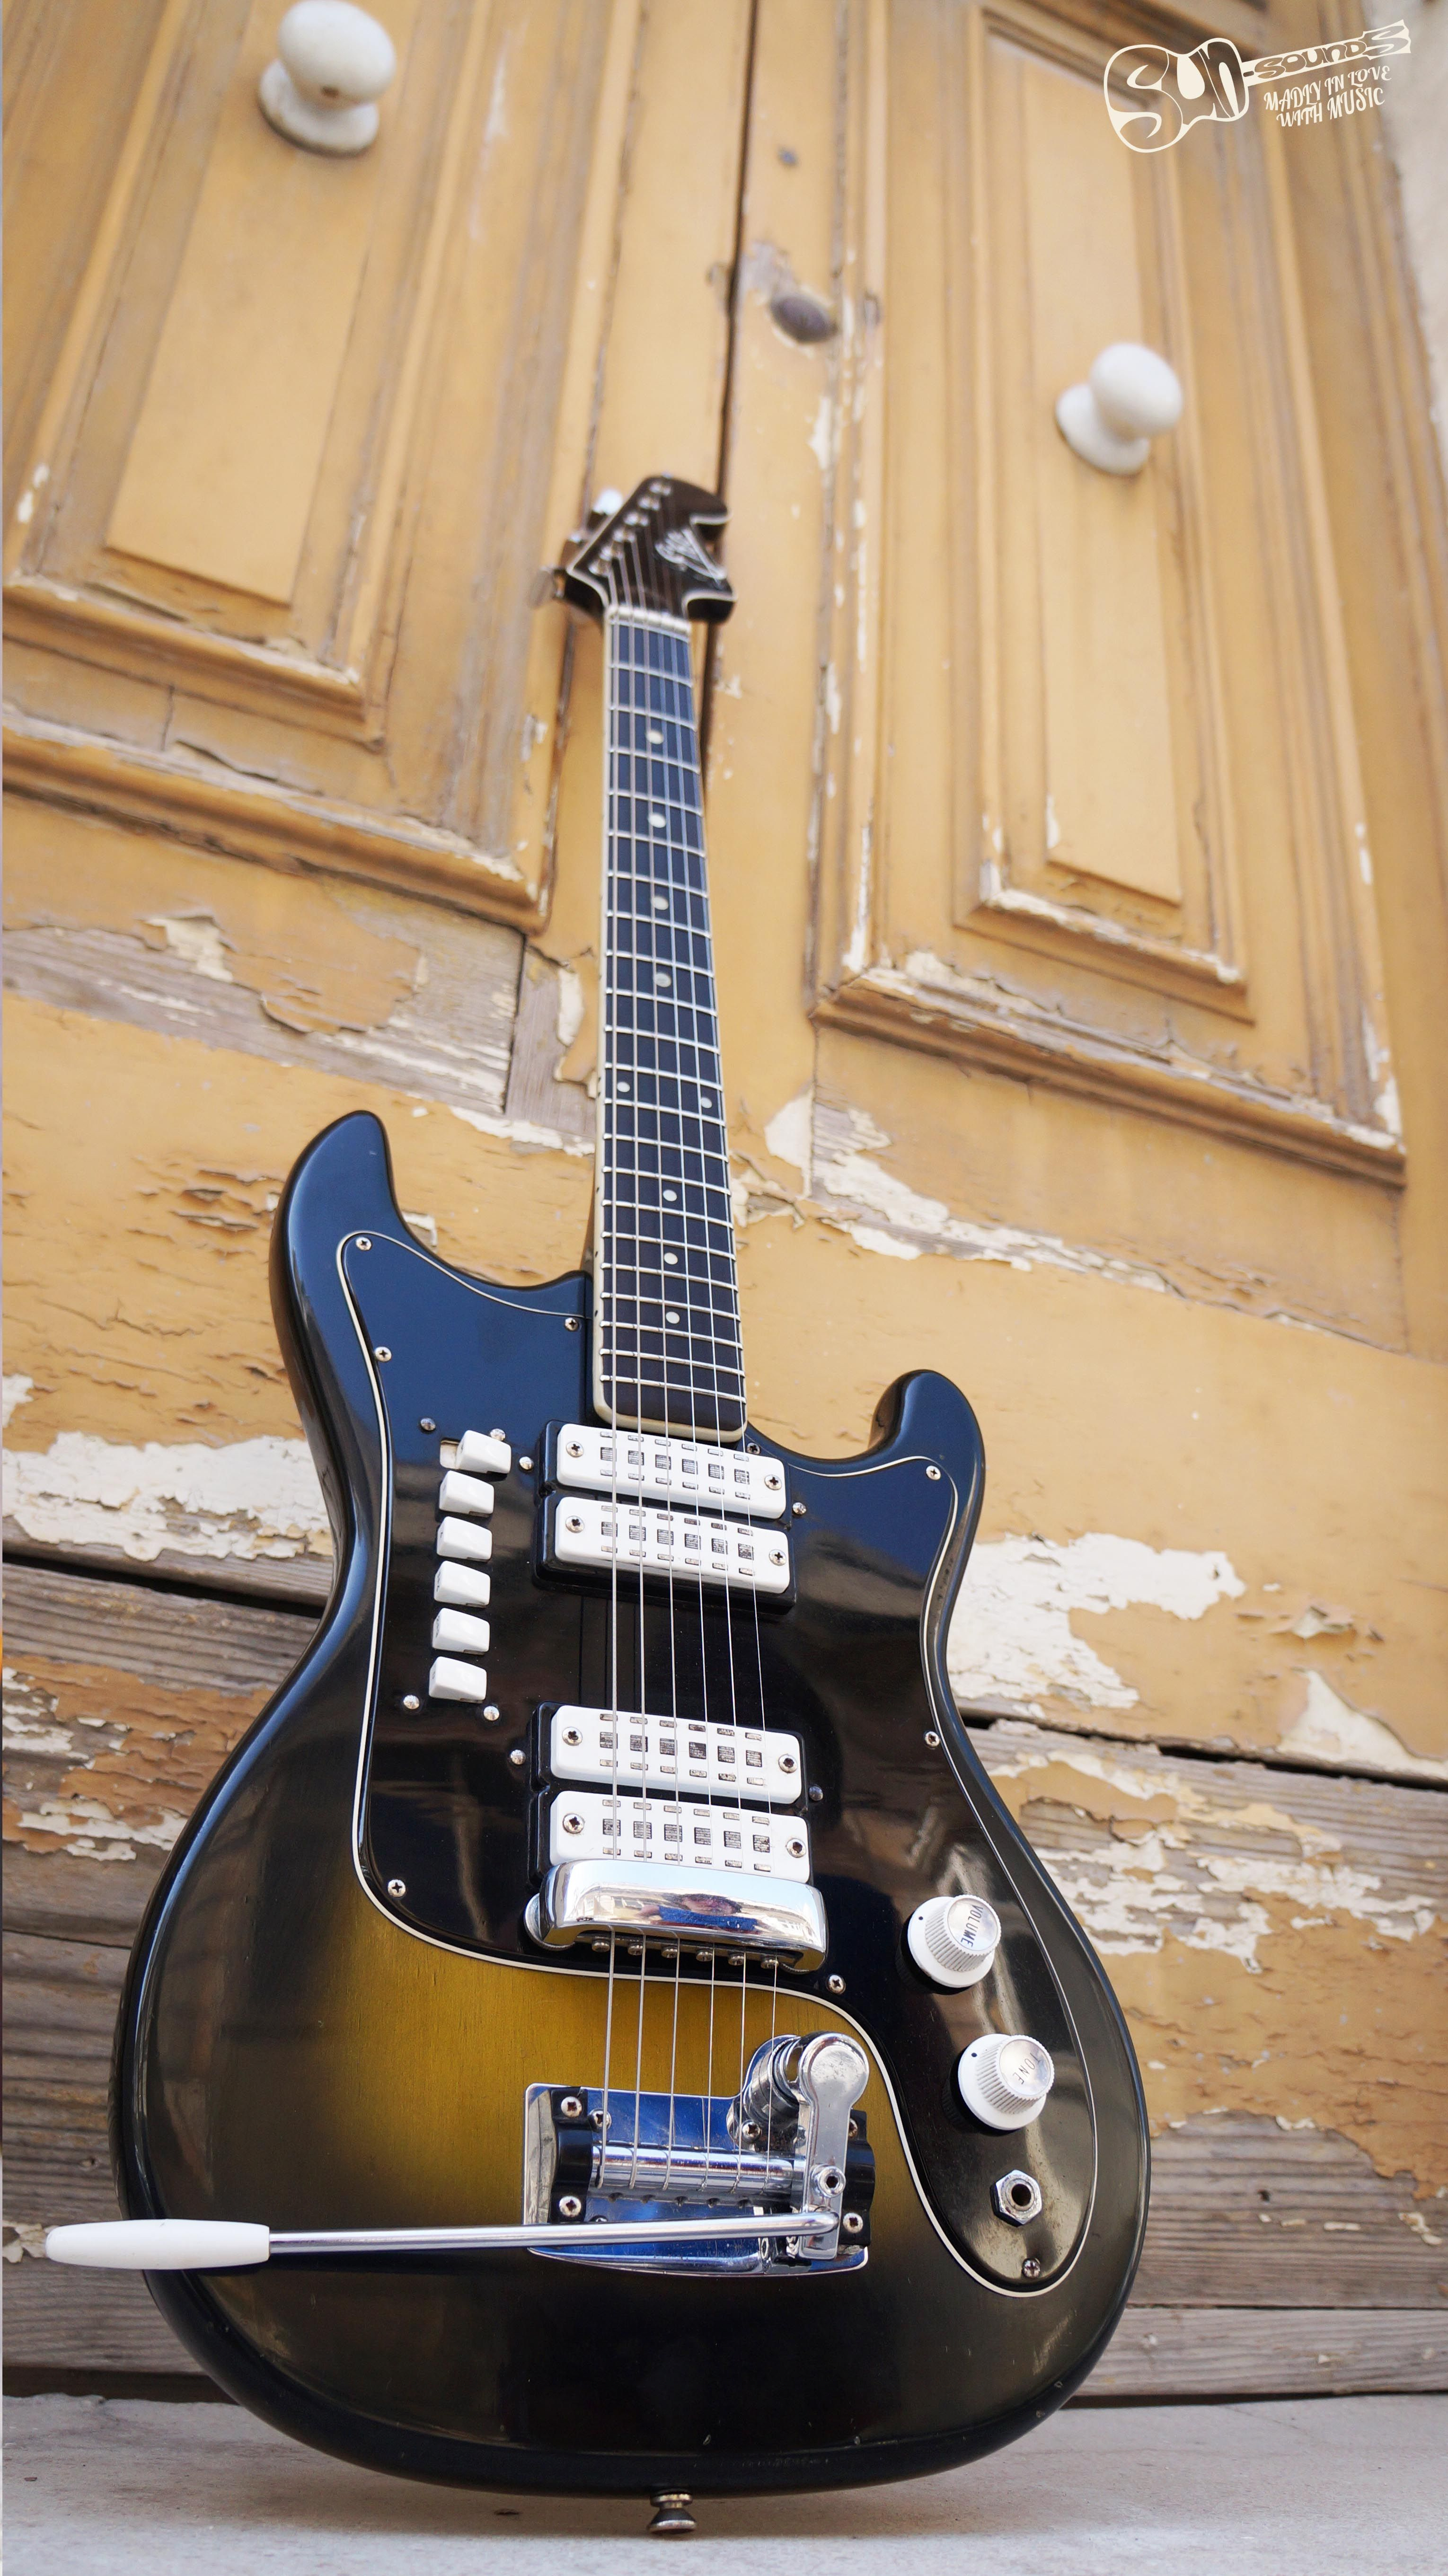 The Glory Of Italian Guitars From The 60s 1965 Condor 820 From Eko Guitars In Excellent Condition Who Said Vint Guitar Basic Guitar Lessons Vintage Guitars